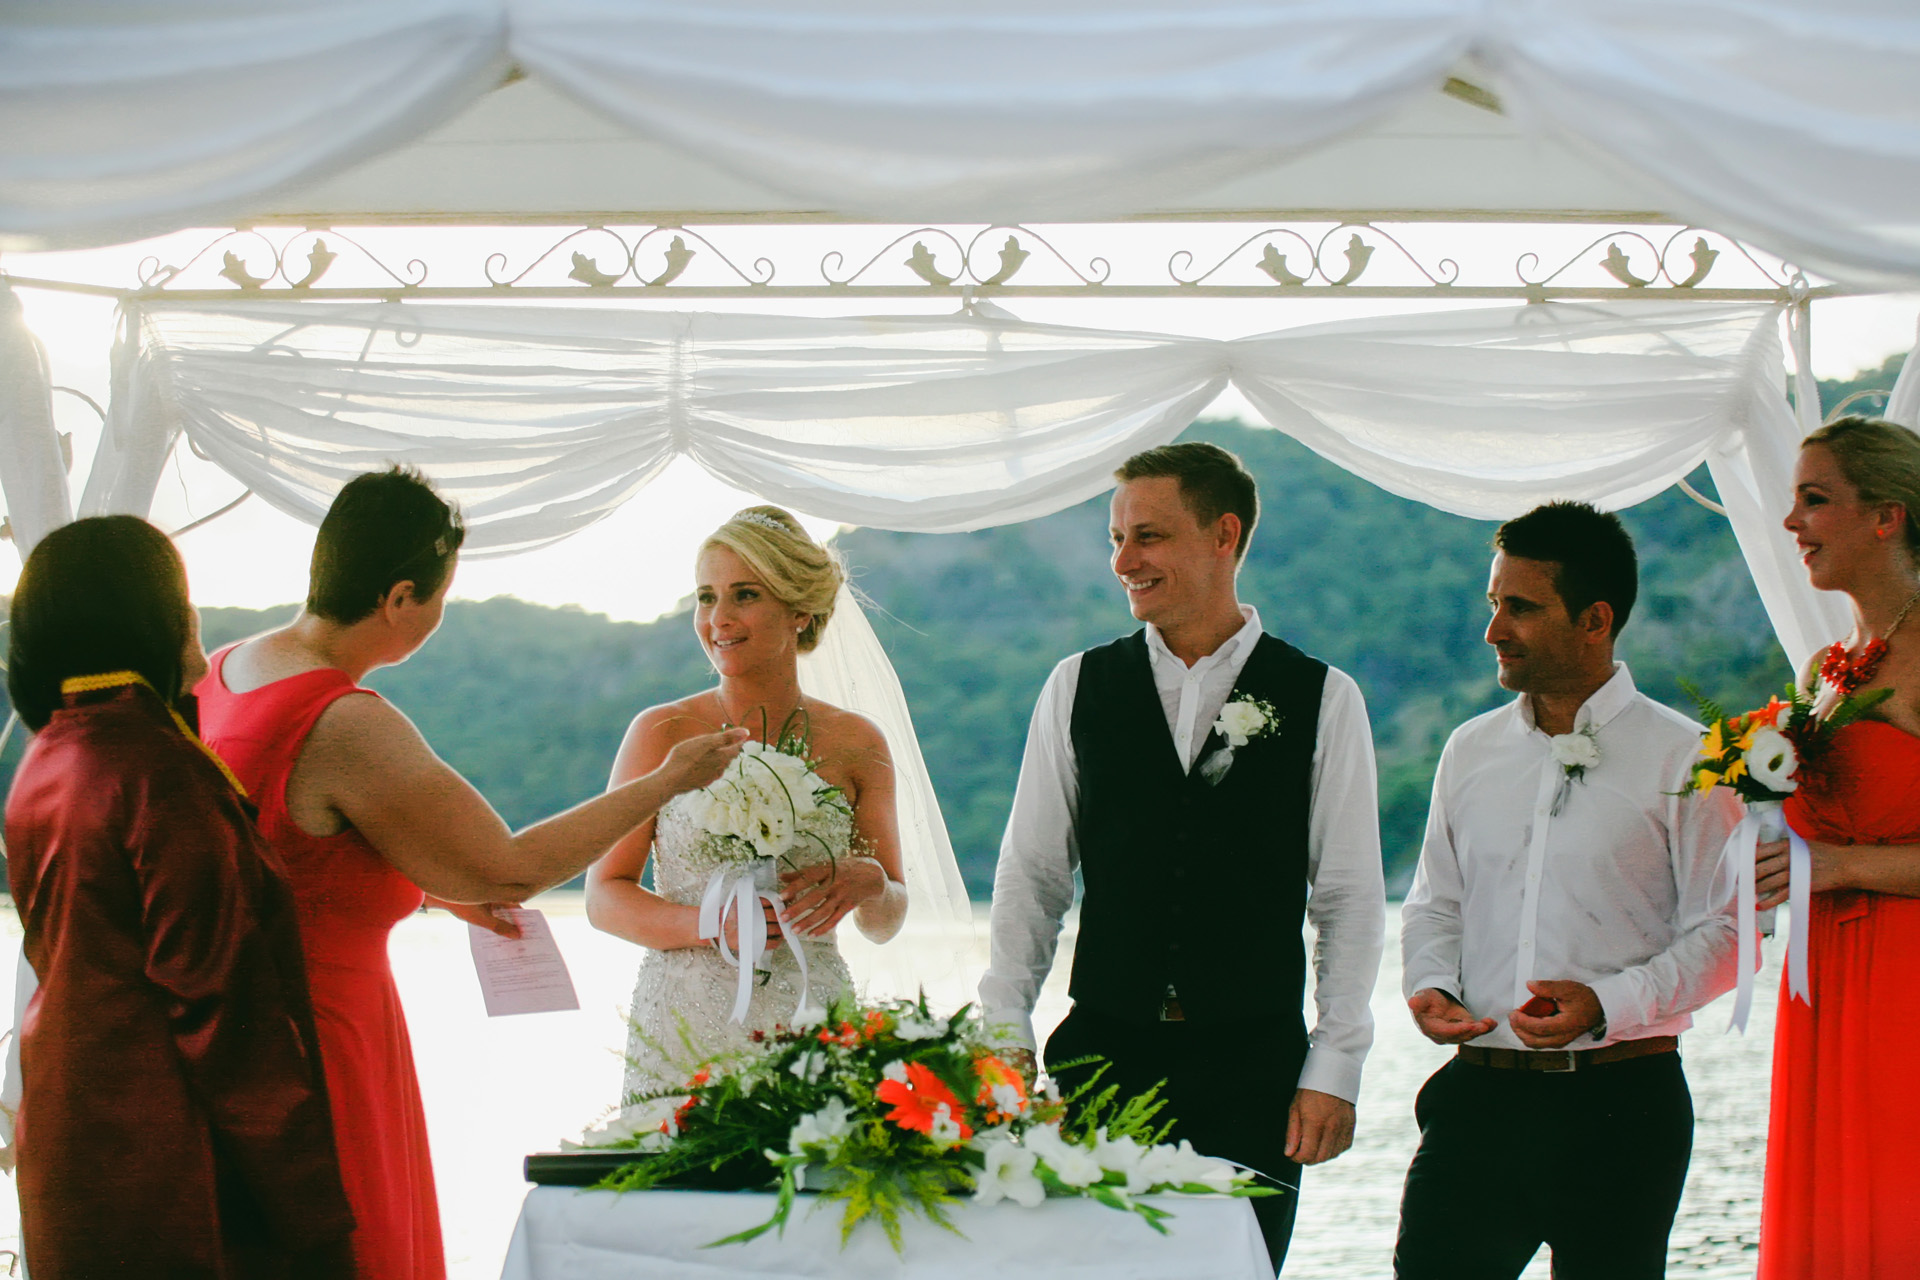 Turkey Destination Elopement Ceremony Photographer | The couple's wedding planner helps out in more ways than one